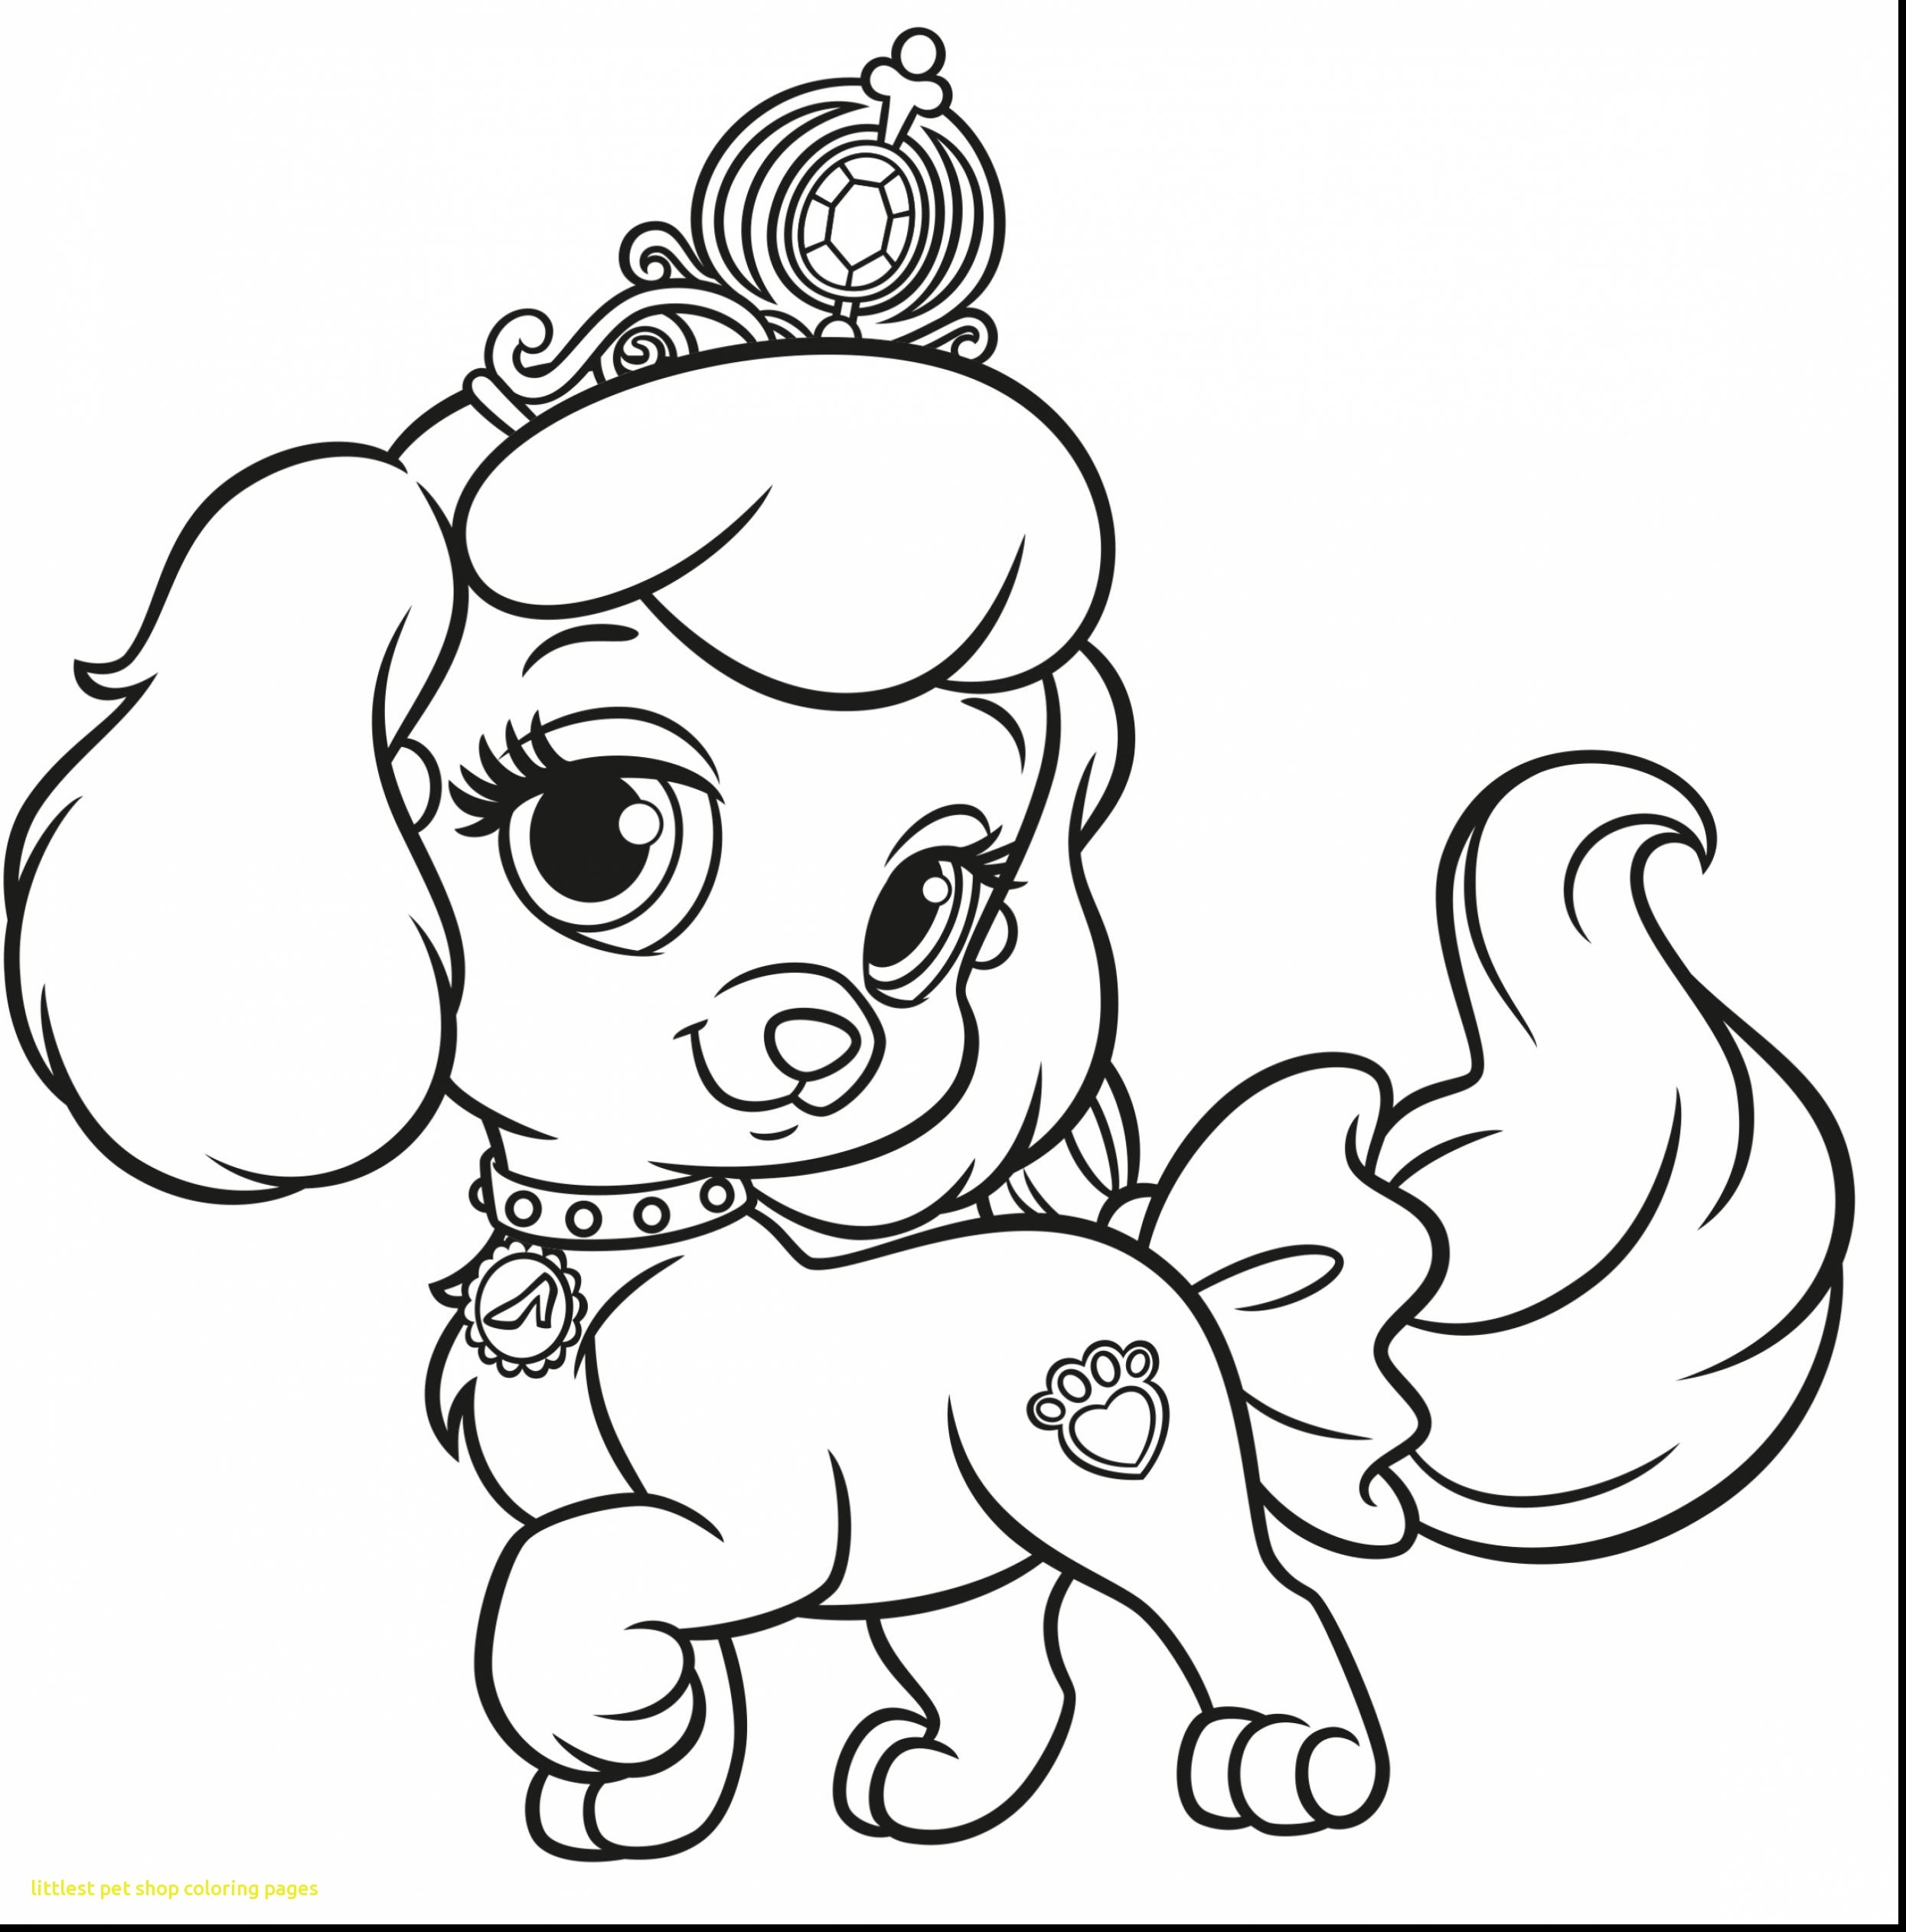 2490x2524 Lps Coloring Pages Cuties Littlest Pet Shop Zoe Colouring Peacock